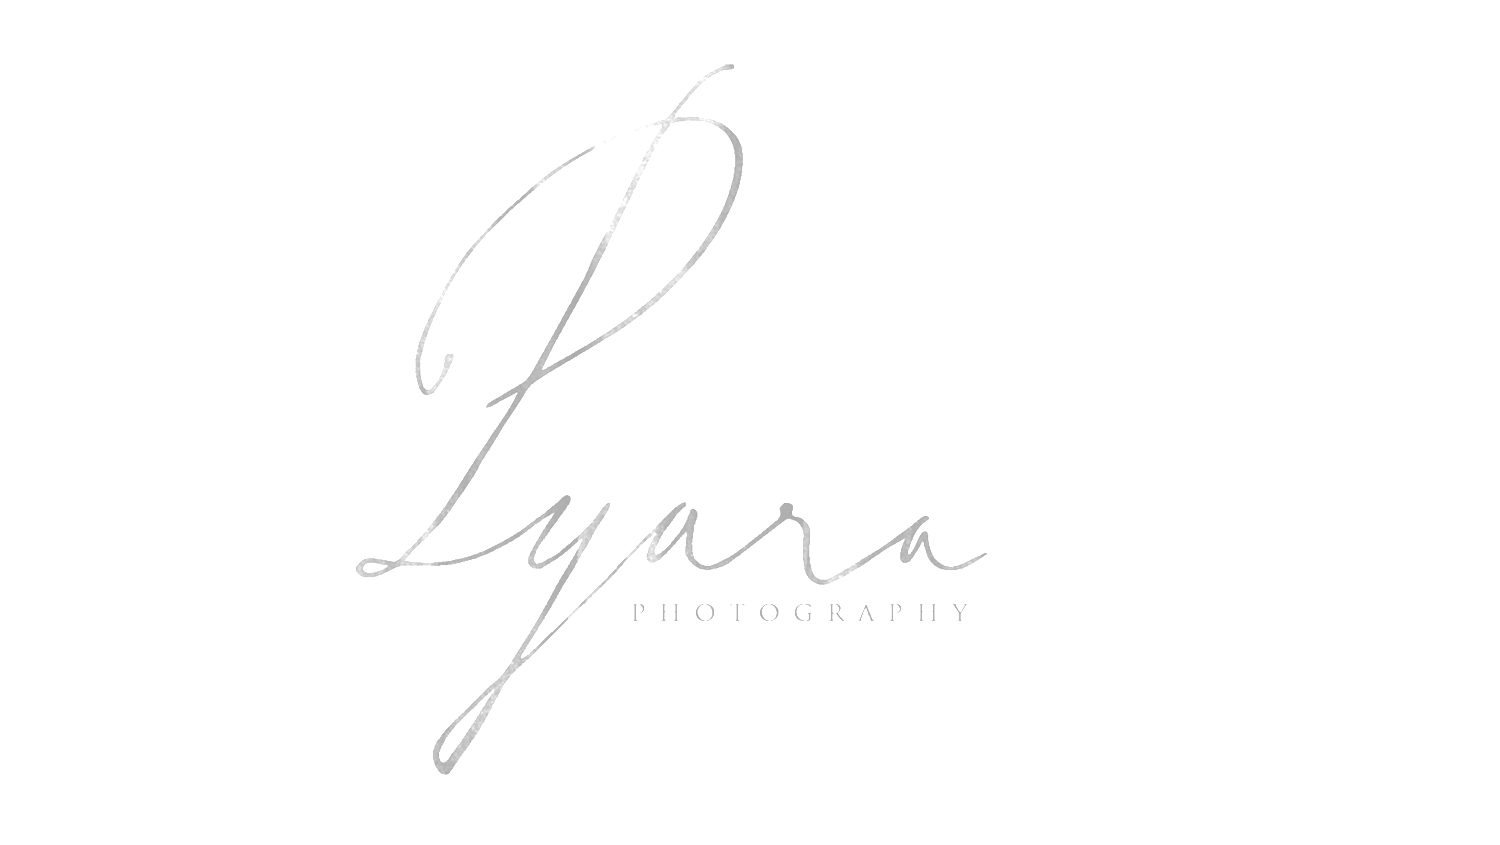 PYARA photography